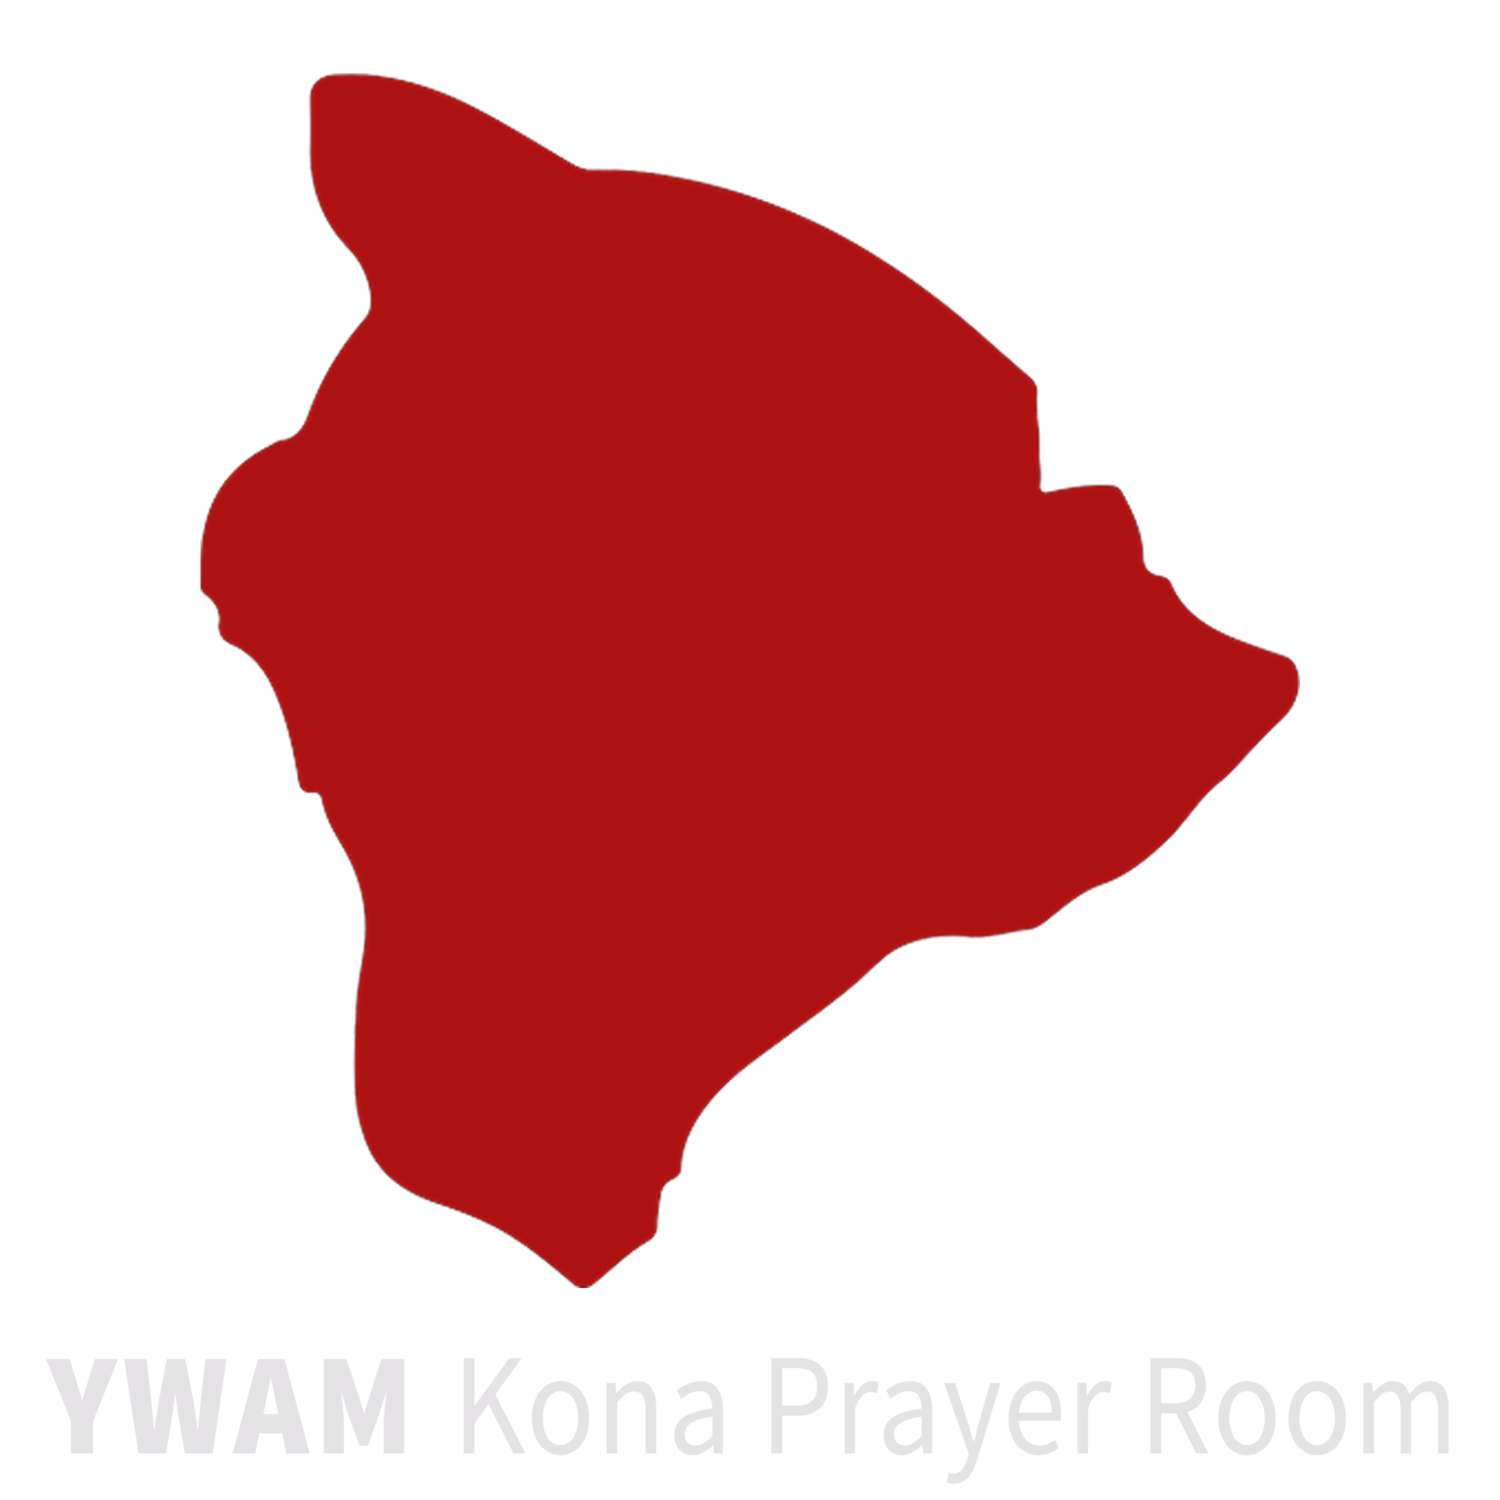 Missions clipart work worship. Our mission ywam kona